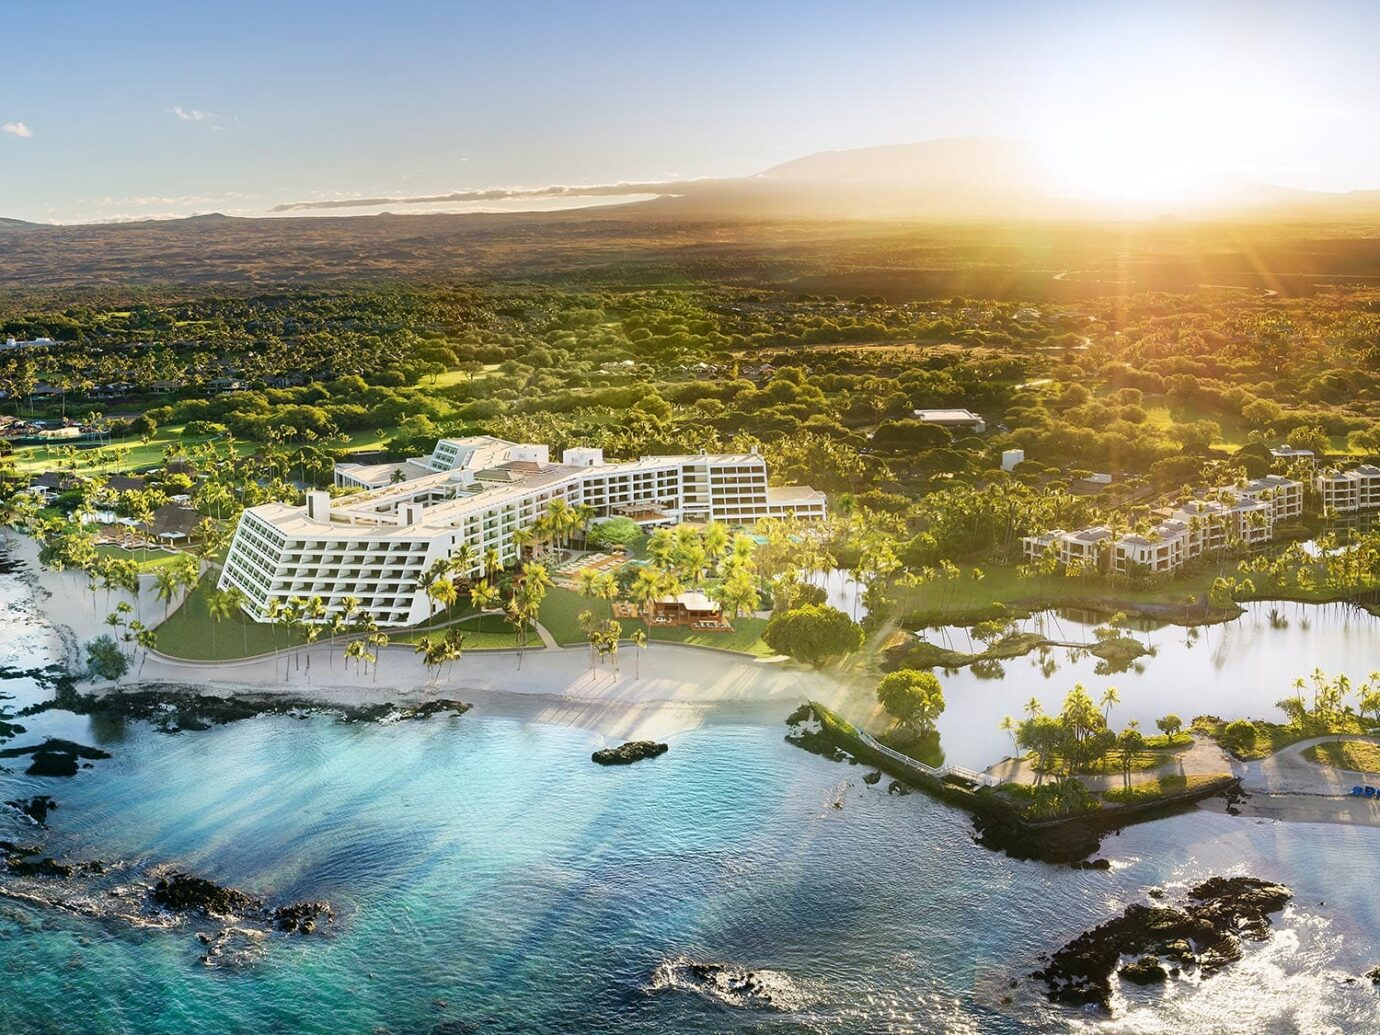 Aerial view of Mauna Lani, Auberge Resorts Collection in Hawaii